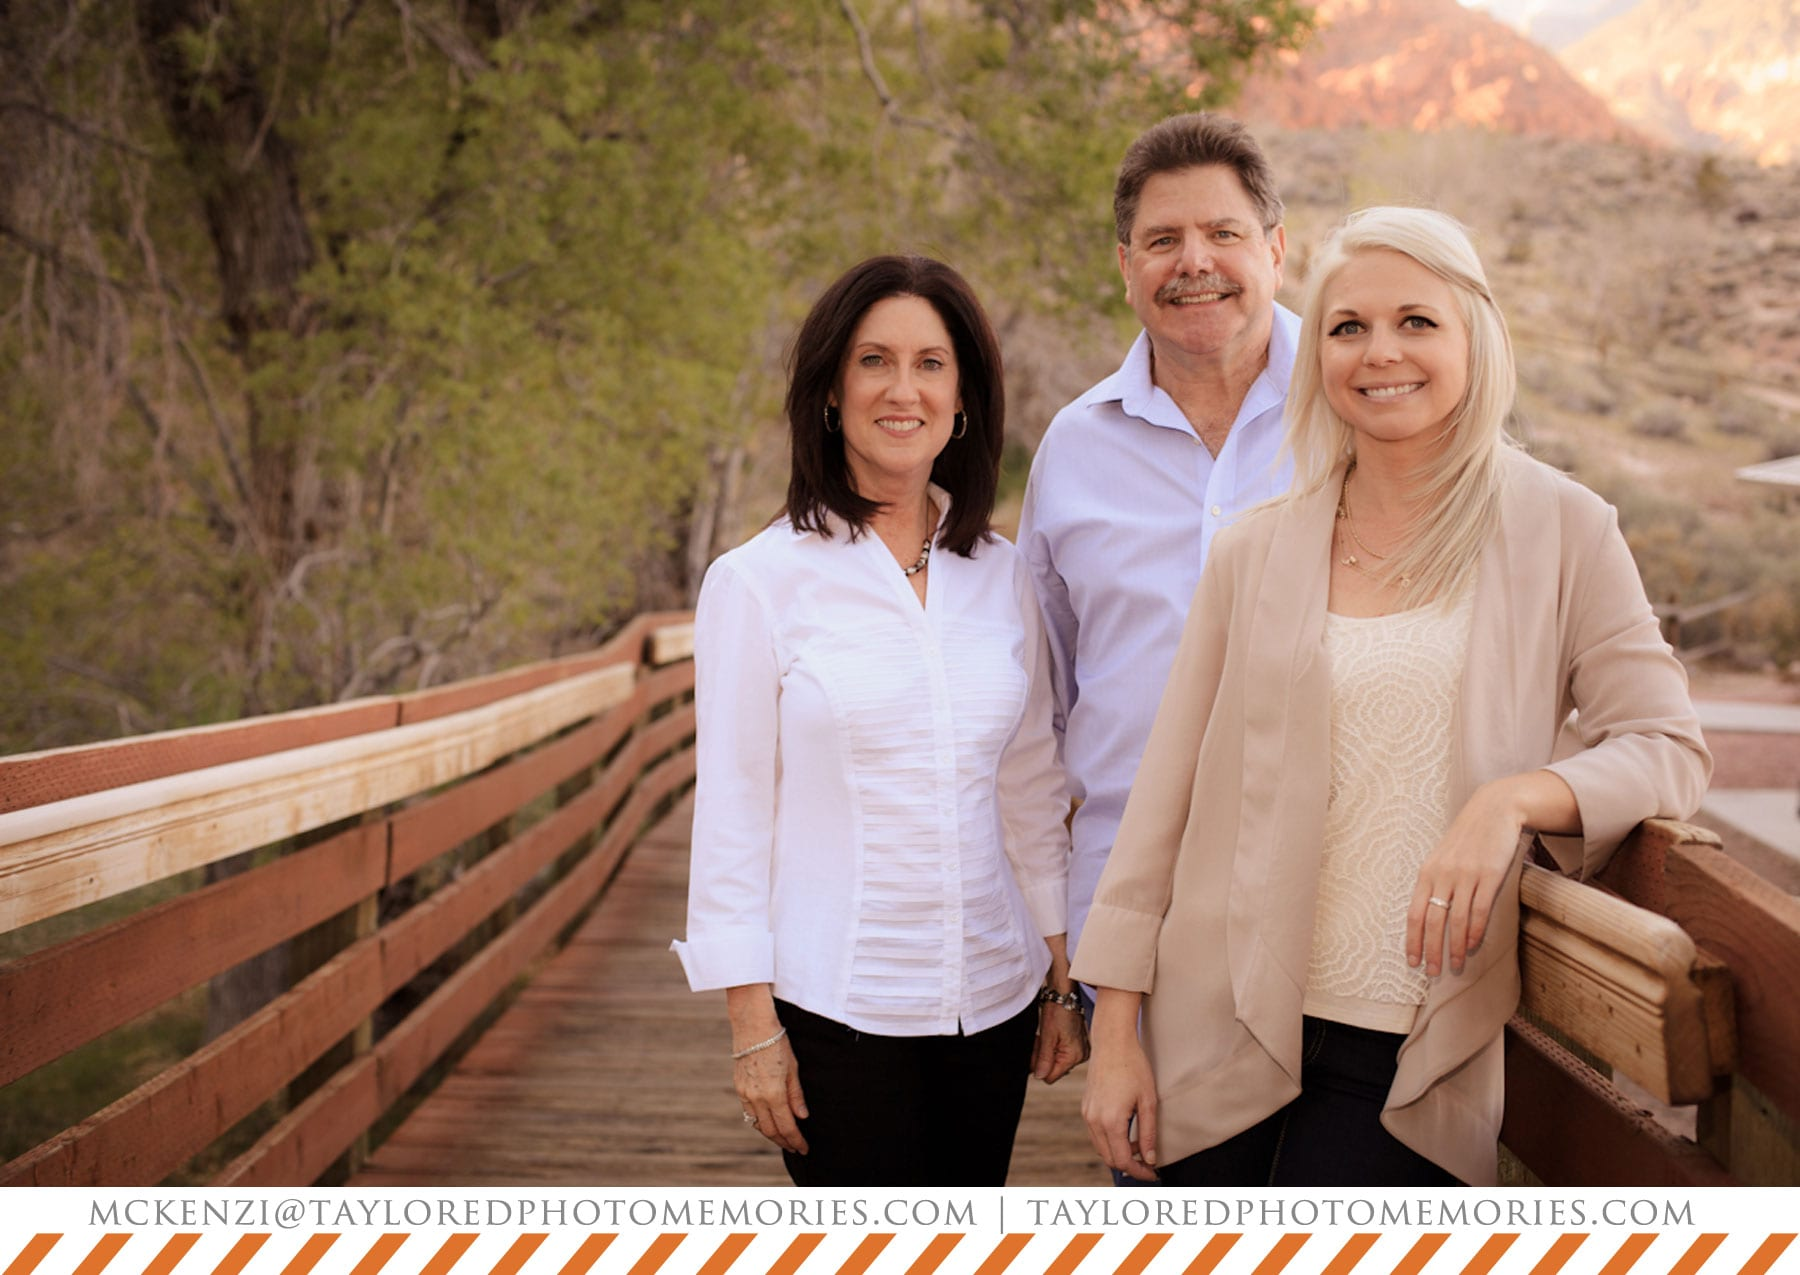 Red Rock Canyon Photography | Taylored Photo Memories | Adventure Photographer